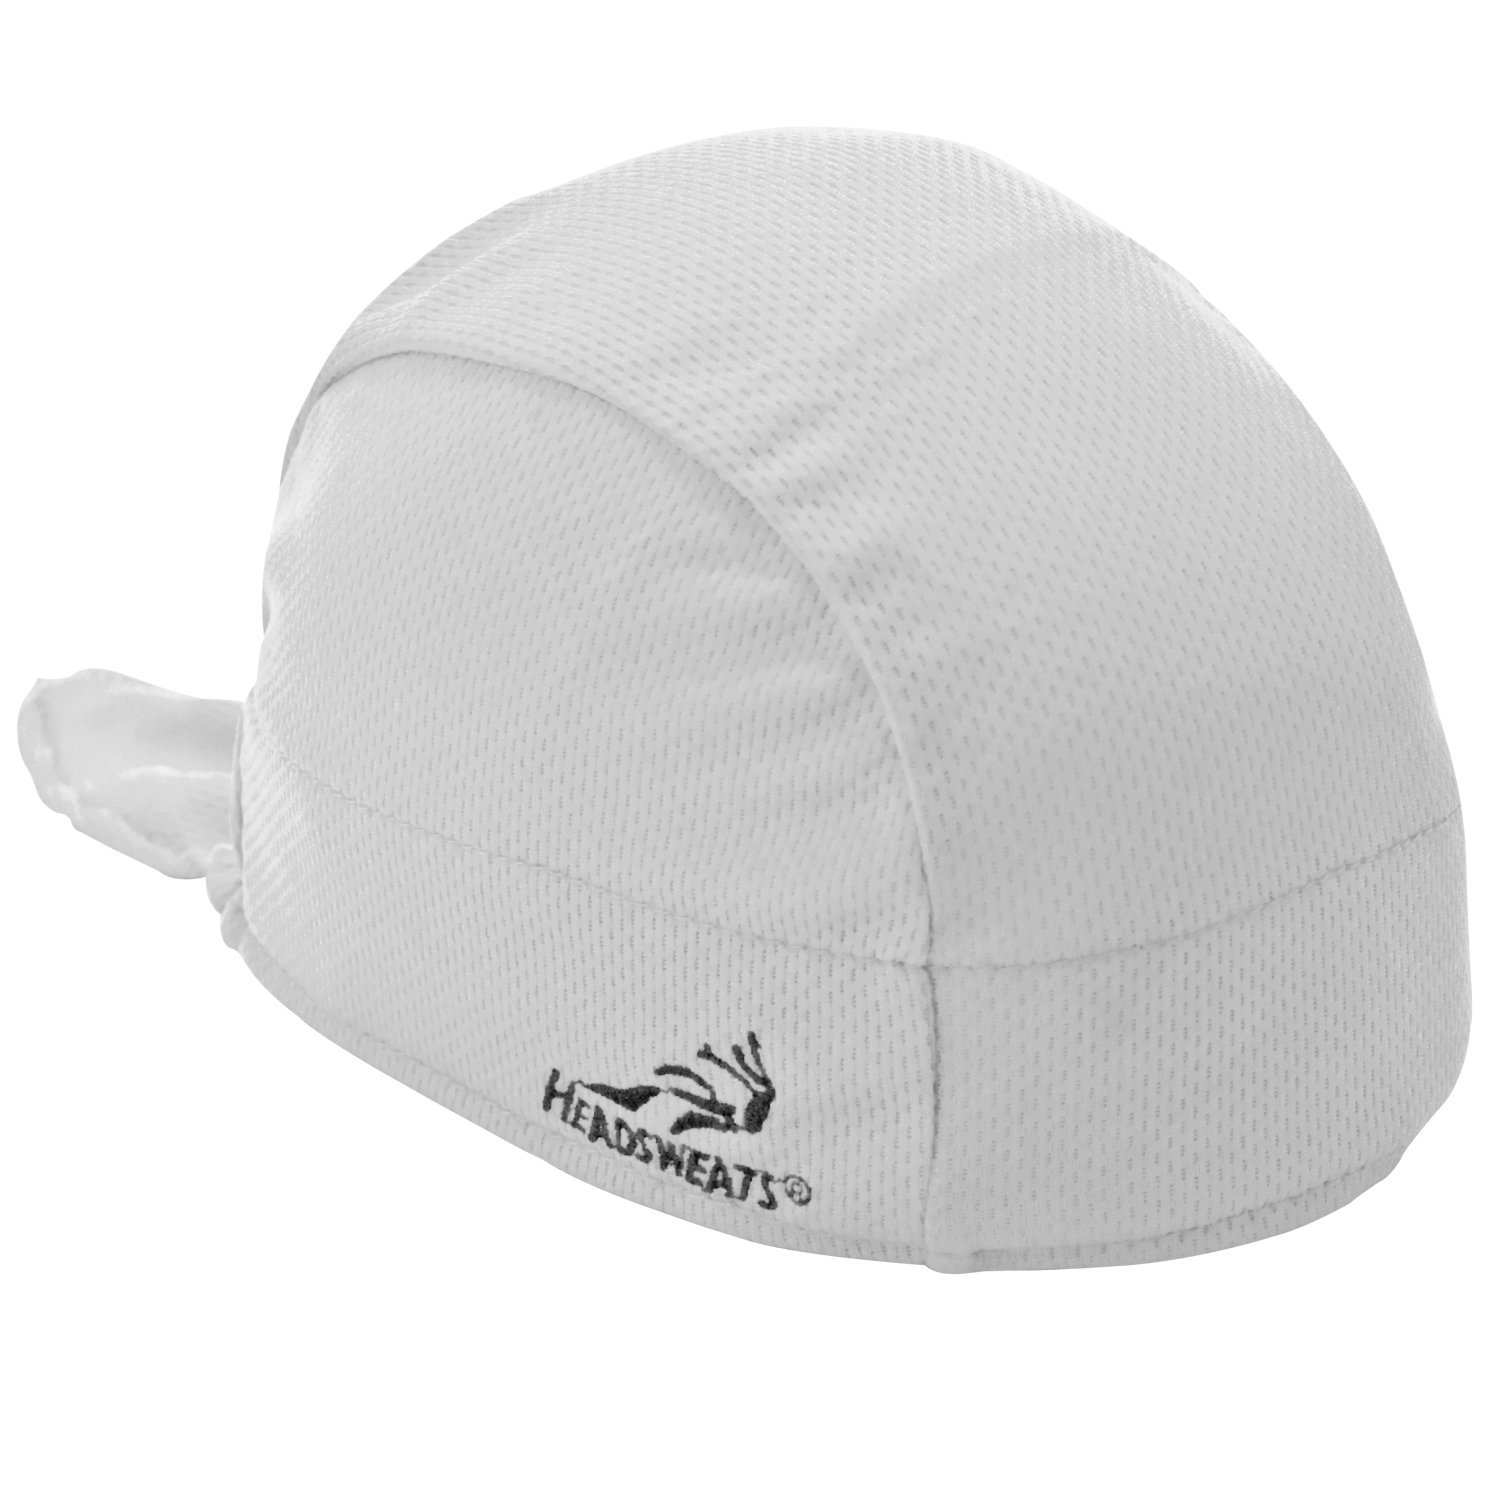 Headsweats Shorty Beanie & Helmet Liner Review